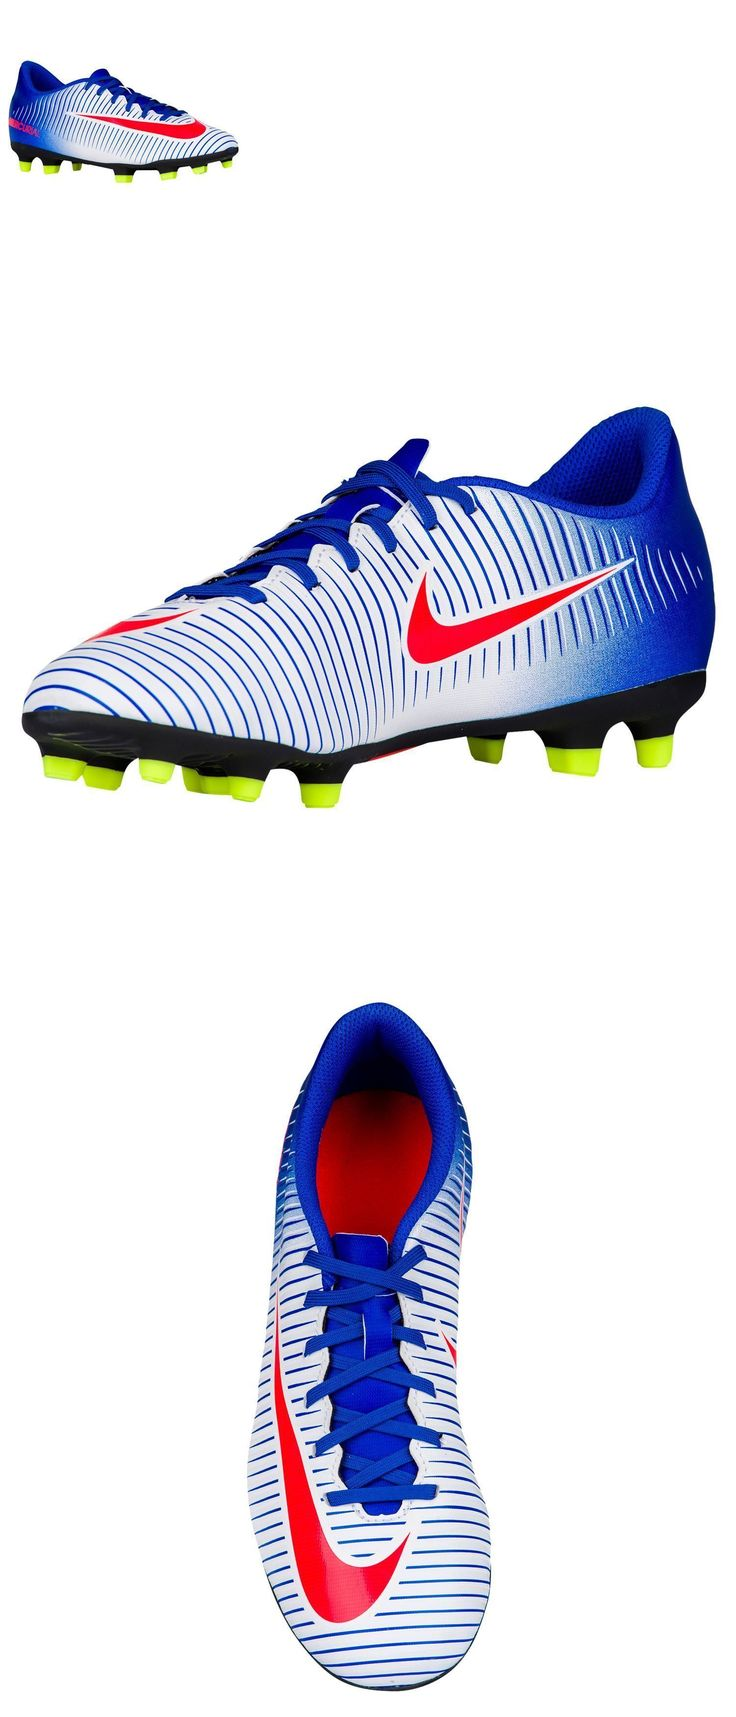 Women 159176: Nike Womens Mercurial Vortex Iii Fg White Soccer Cleats Shoes Blue Volt -> BUY IT NOW ONLY: $54.95 on eBay!